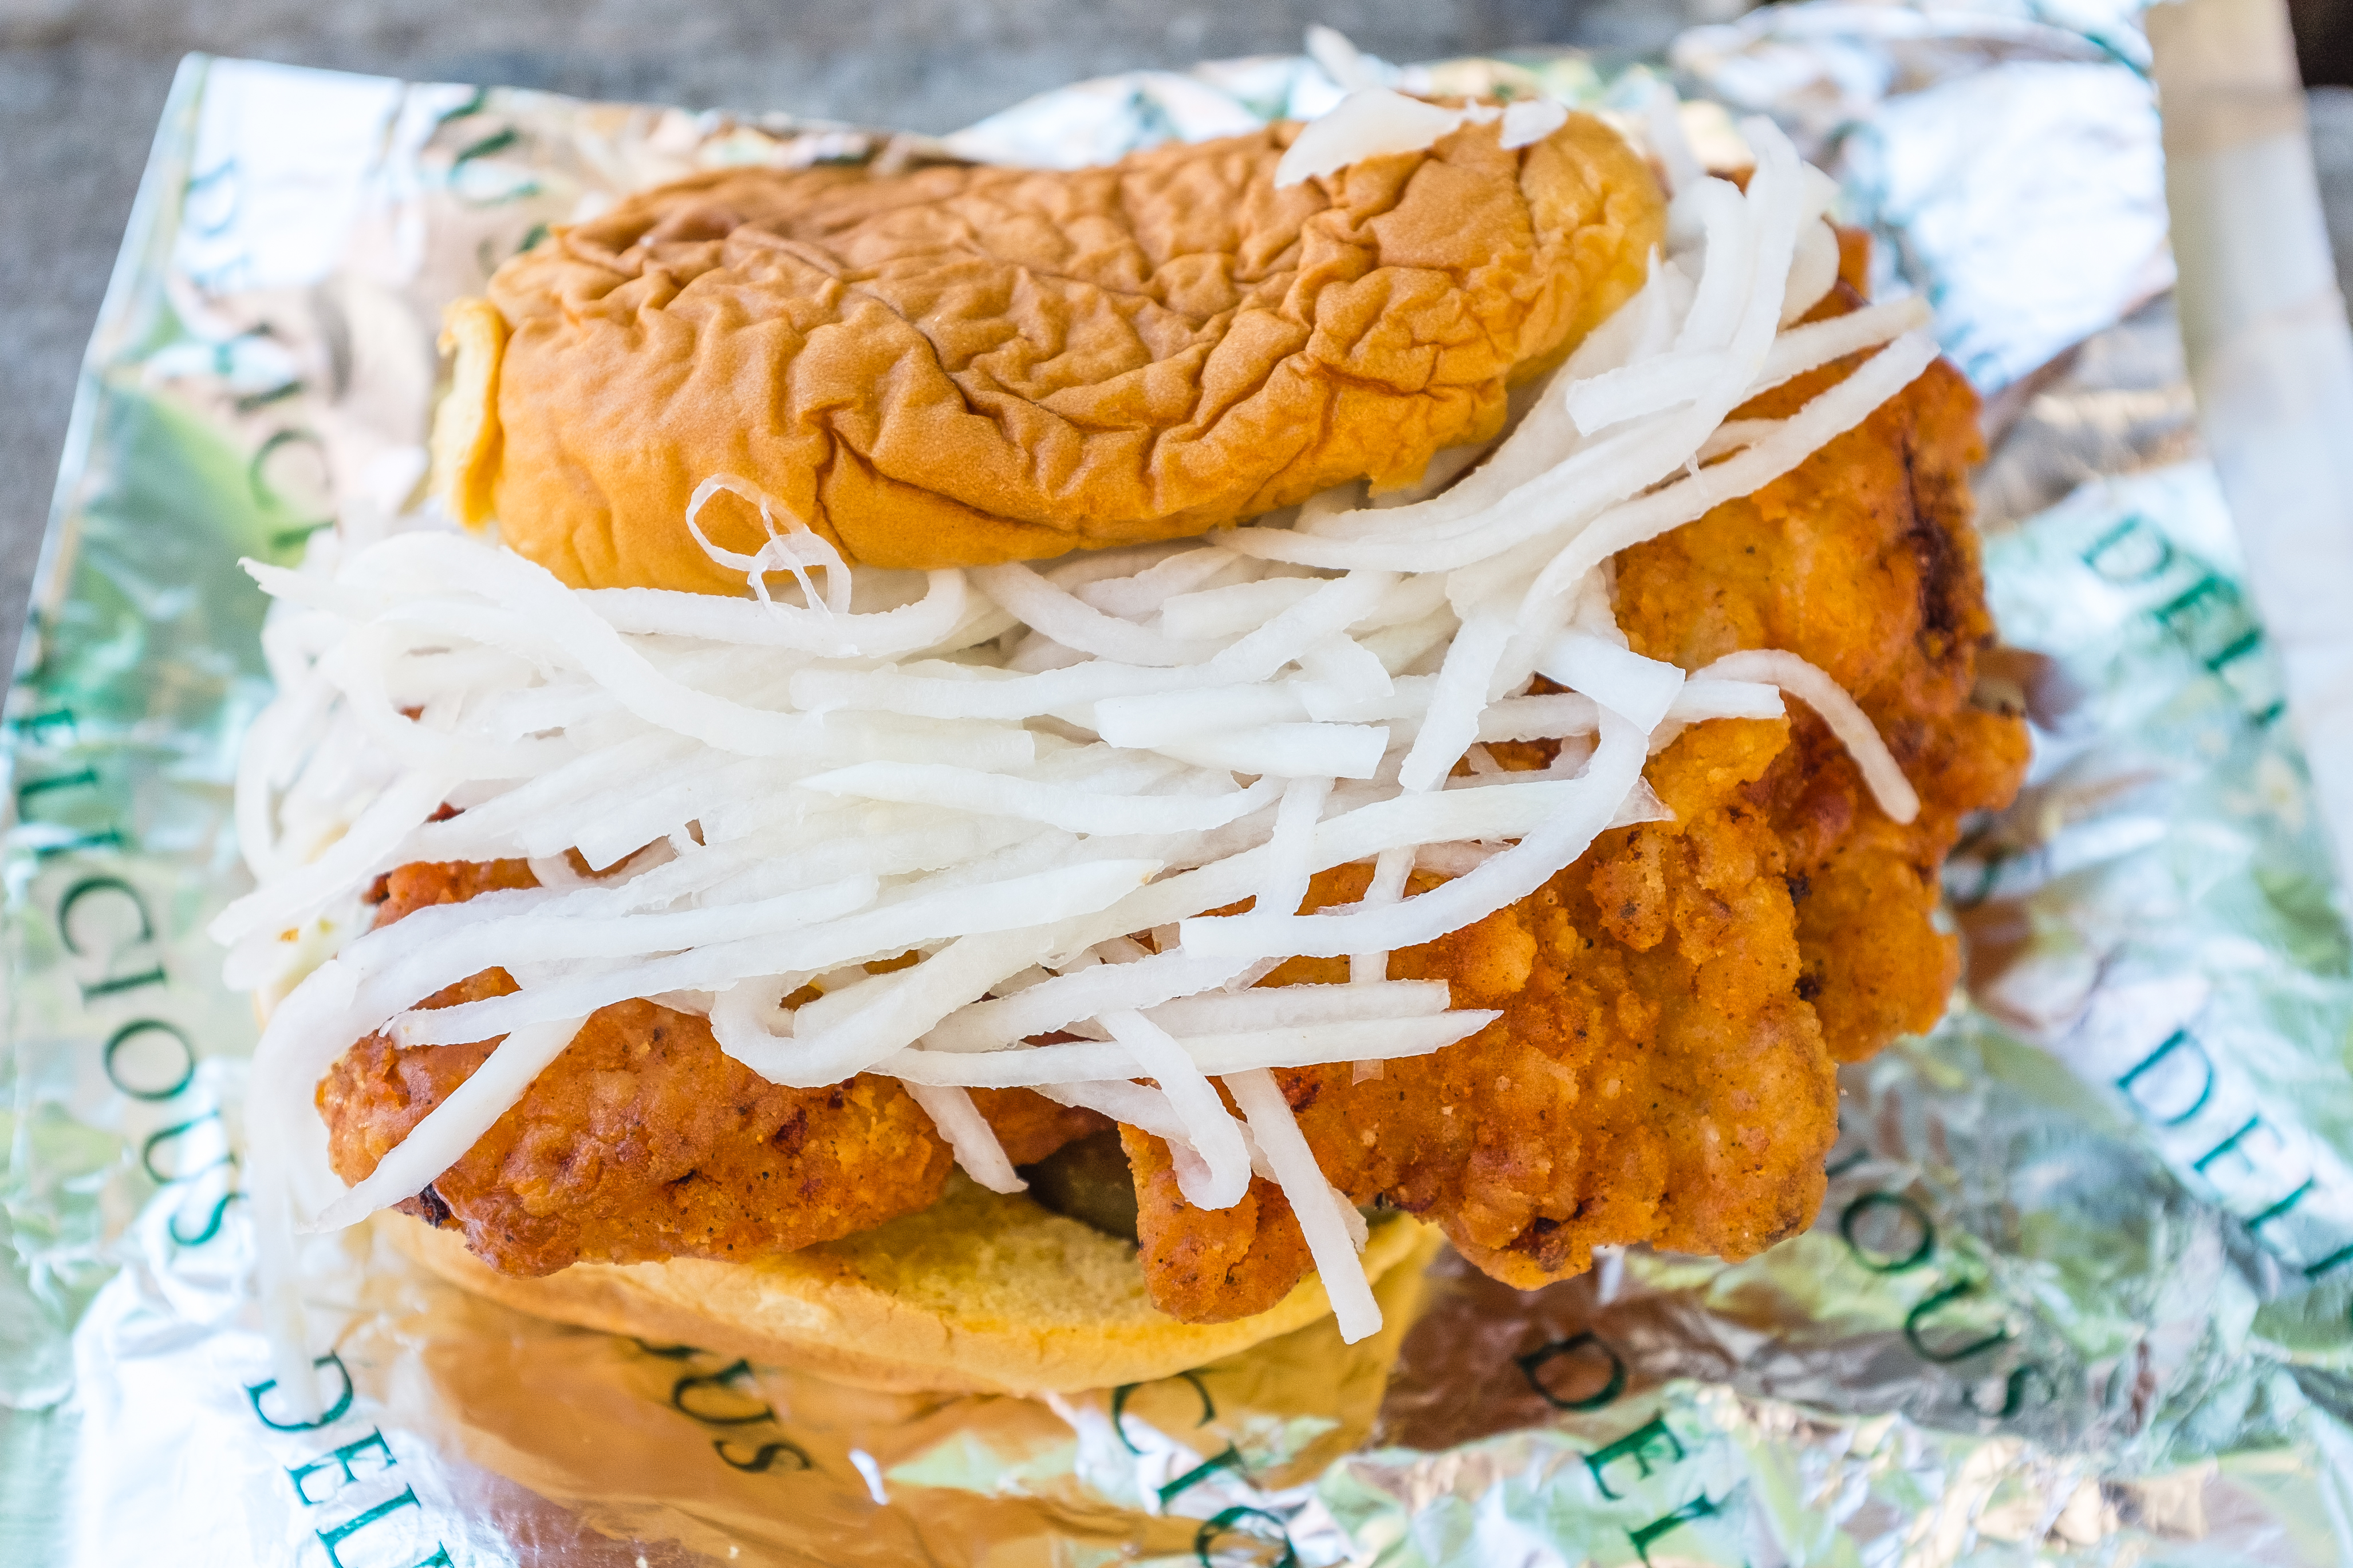 This Koreano sandwich could be your dinner tomorrow night.